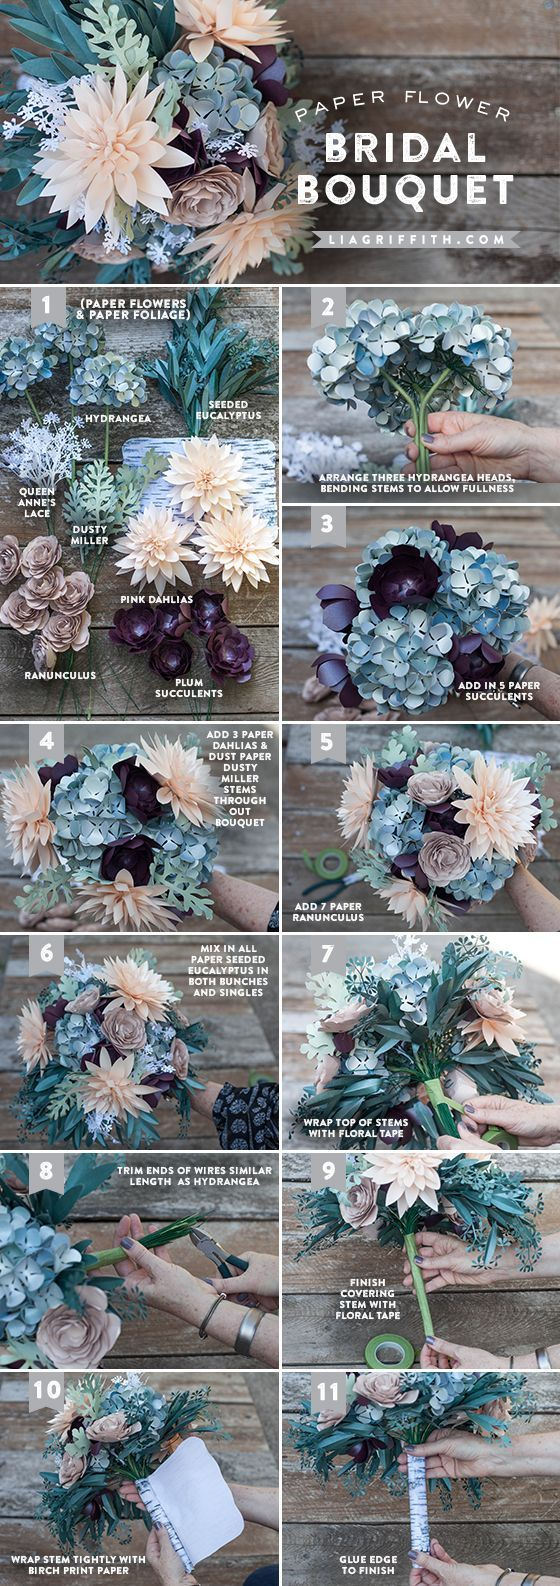 Best 25 paper flowers wedding ideas on pinterest paper flowers diy rustic paper bridal bouquet dhlflorist Choice Image